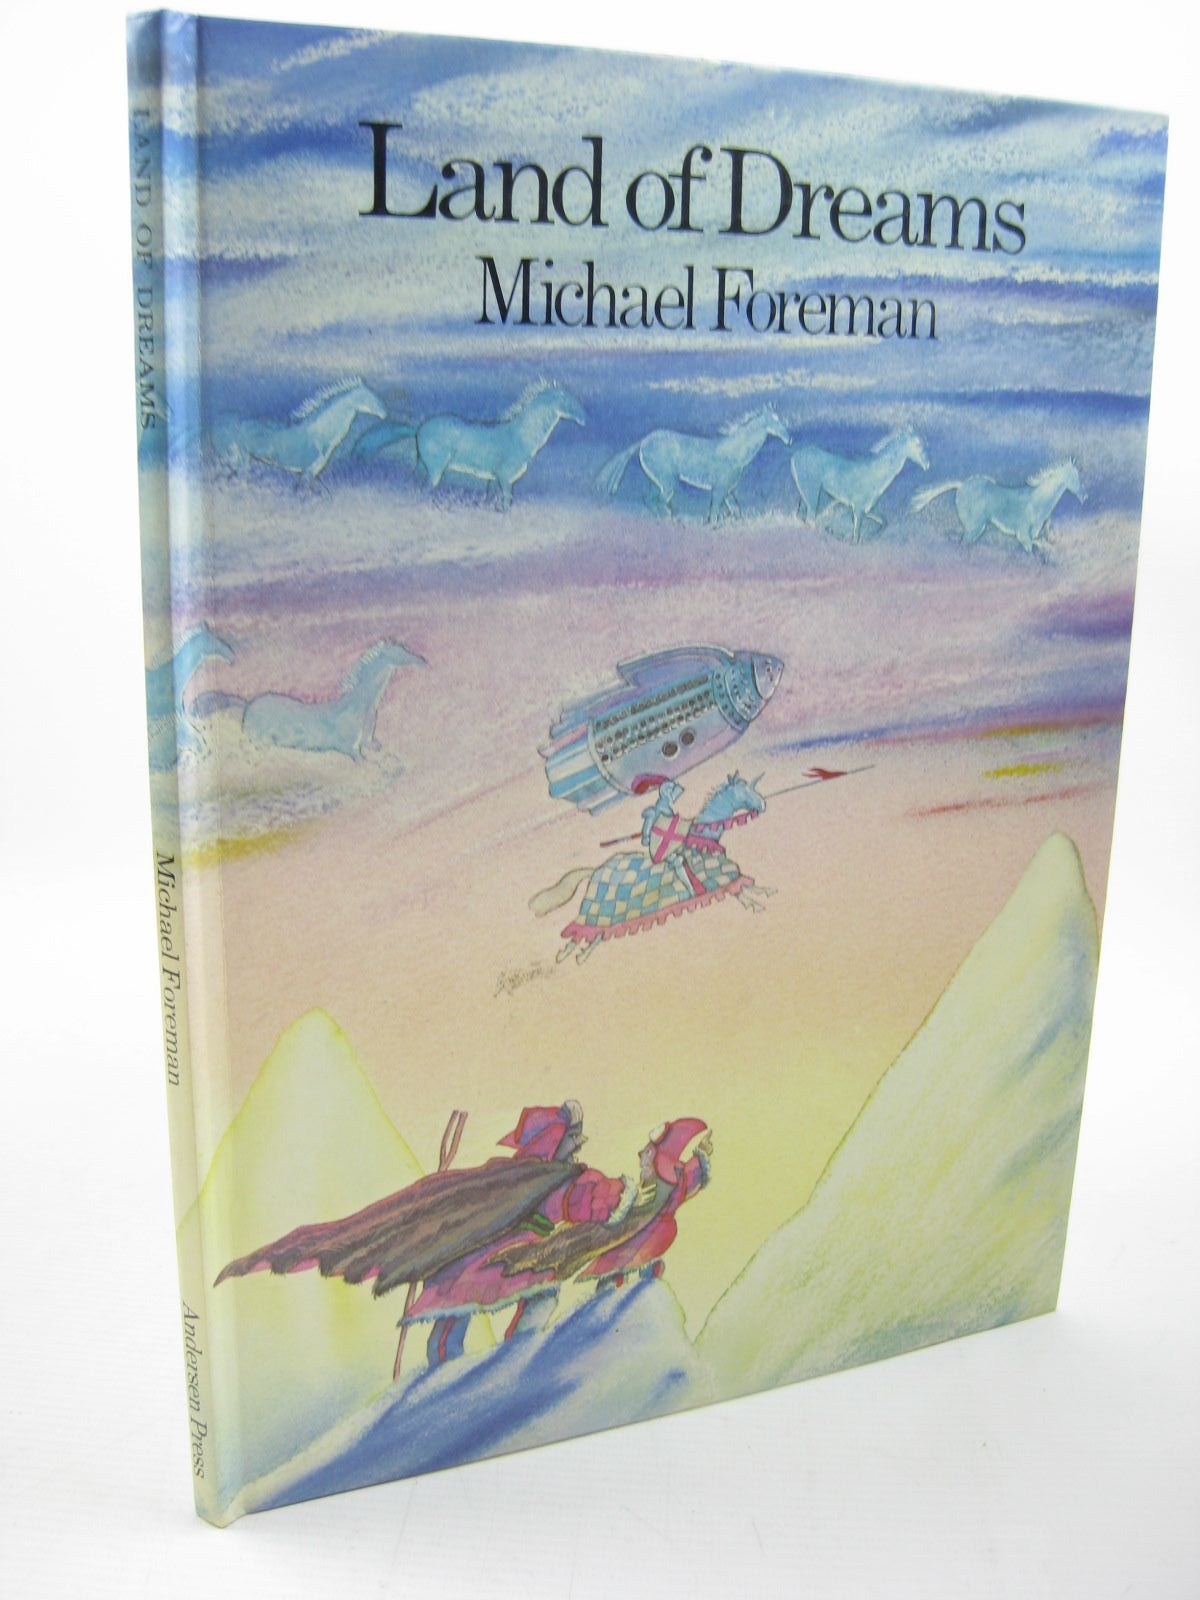 Photo of LAND OF DREAMS written by Foreman, Michael illustrated by Foreman, Michael published by Andersen Press Ltd. (STOCK CODE: 1312749)  for sale by Stella & Rose's Books